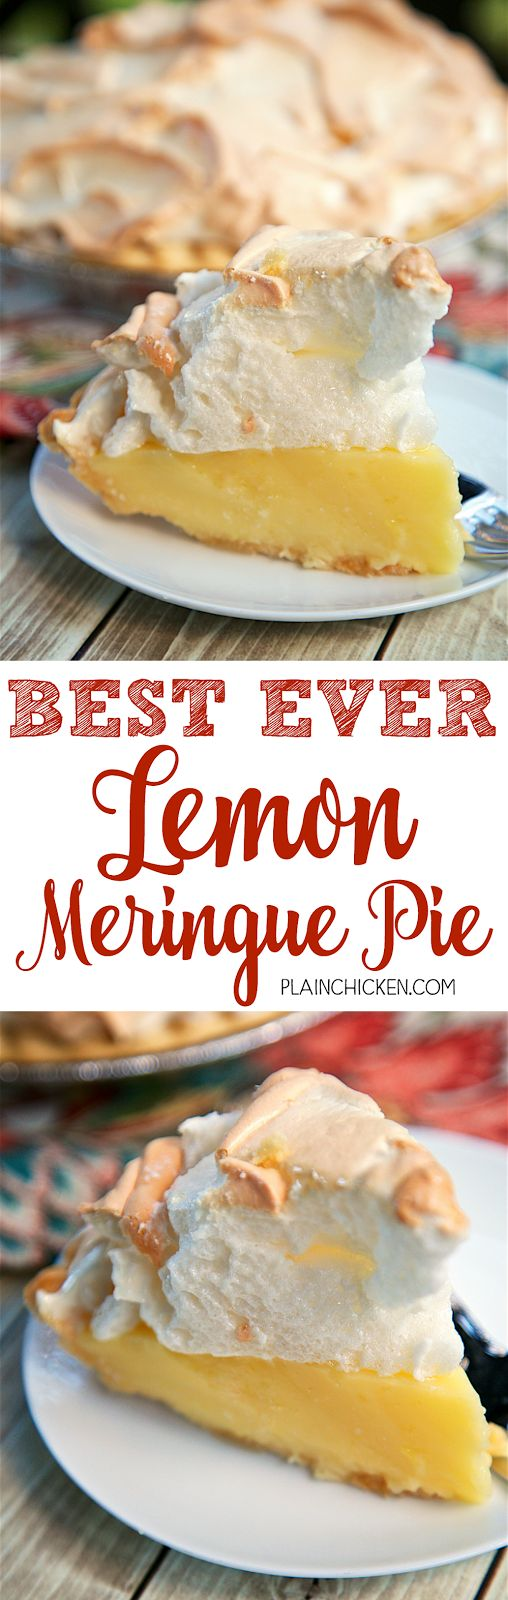 Best Ever Lemon Meringue Pie - homemade lemon pie topped with a quick homemade meringue. (sugar, cornstarch, eggs, milk lemon juice, butter, lemon zest) The pie is ready…